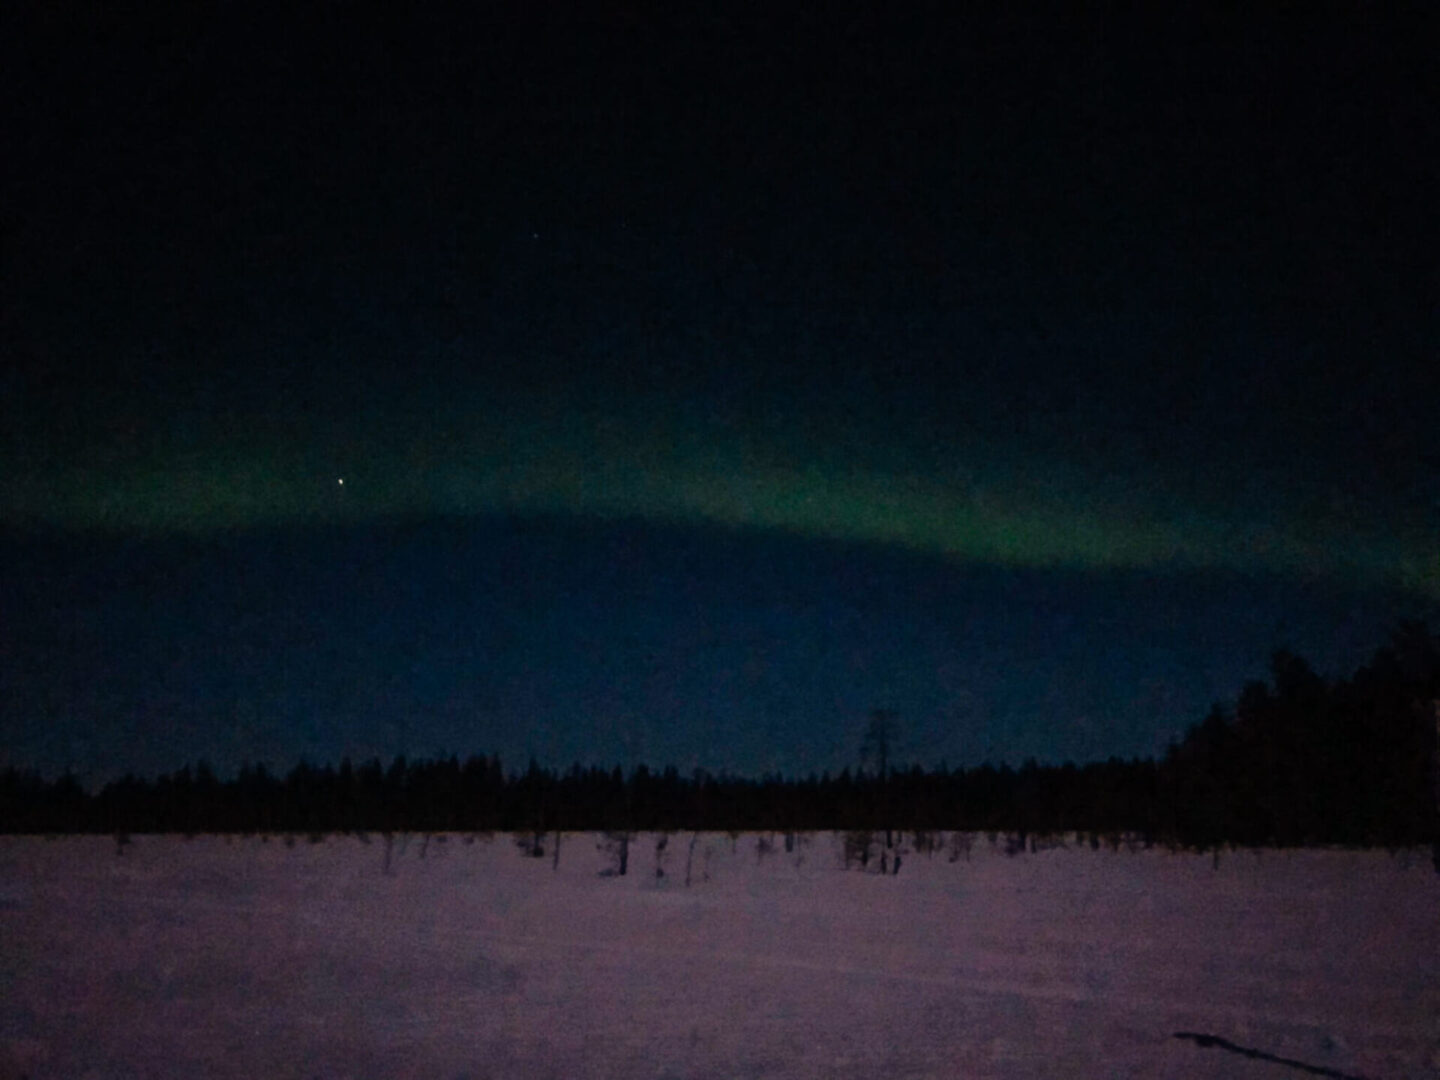 The northern lights over the snow